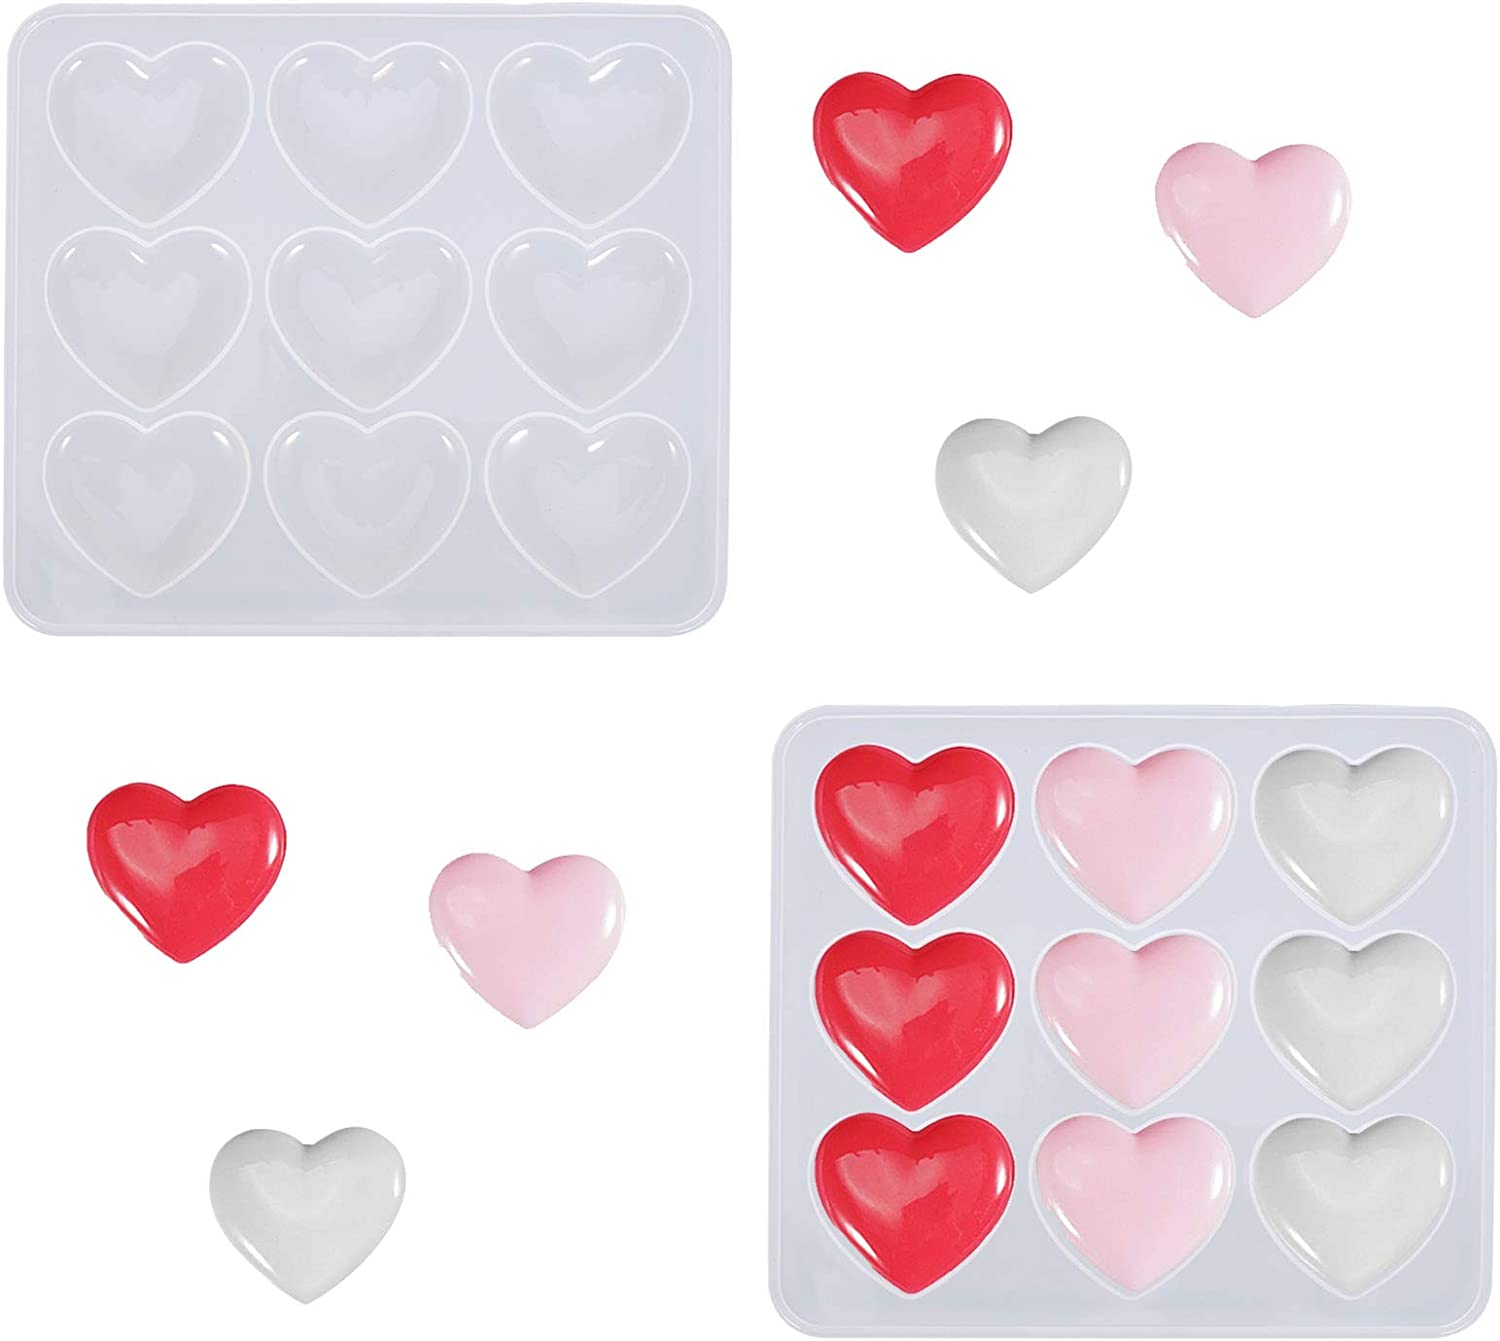 Miss House 2 Pieces Heart Popular standard Shape Max 88% OFF Charms Mold Keychain Resin